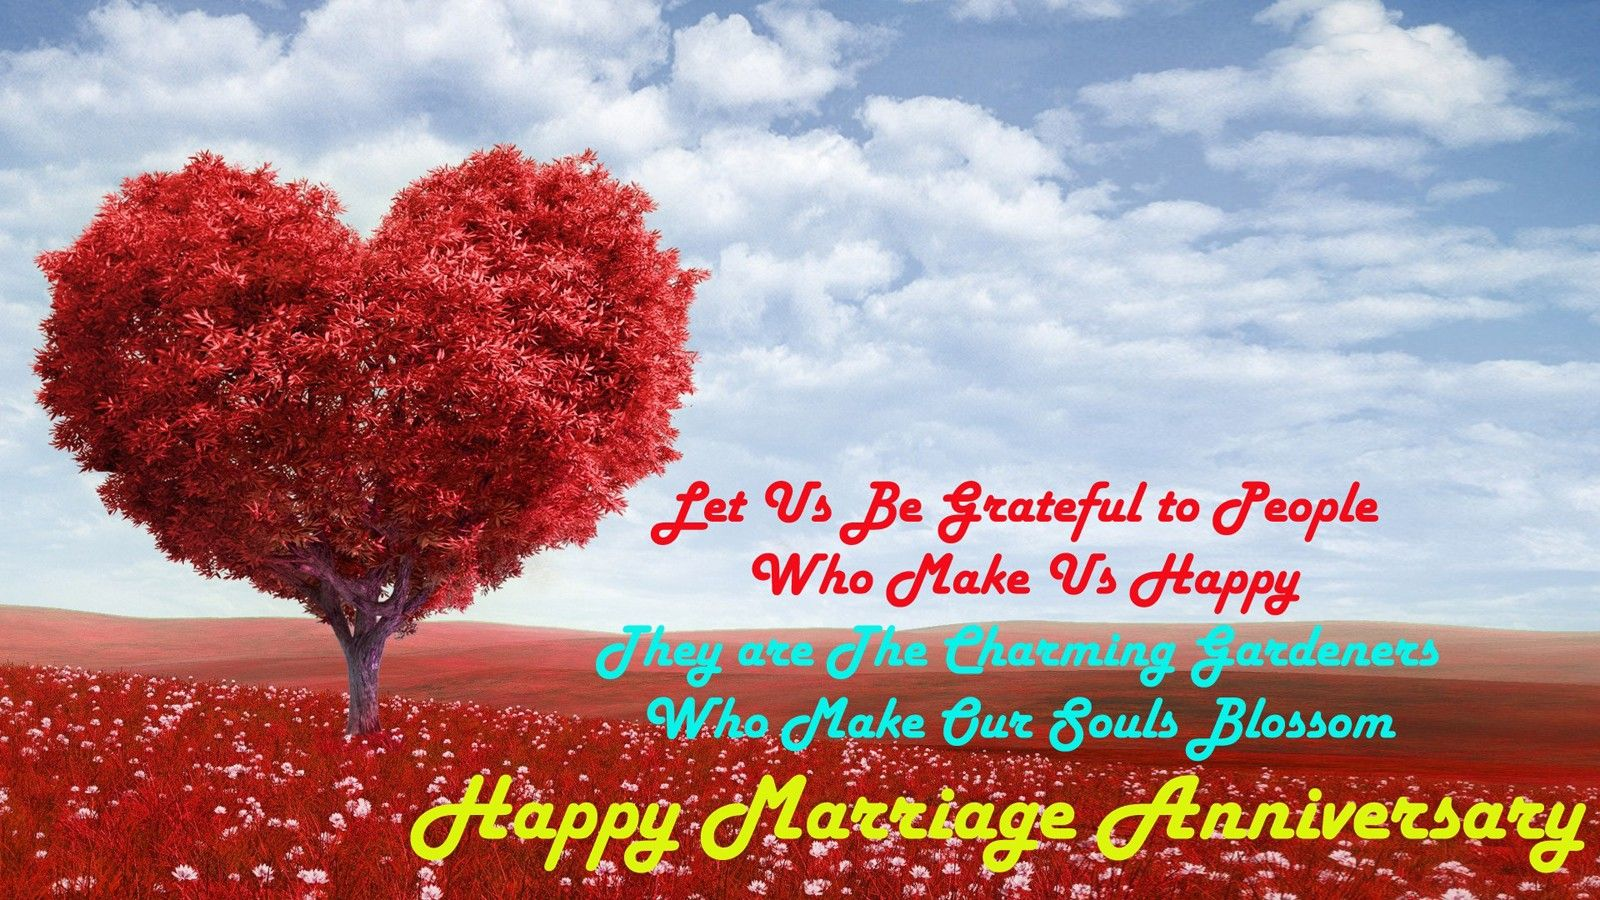 Wedding Anniversary Wishes, Quotes, Messages, Cards And